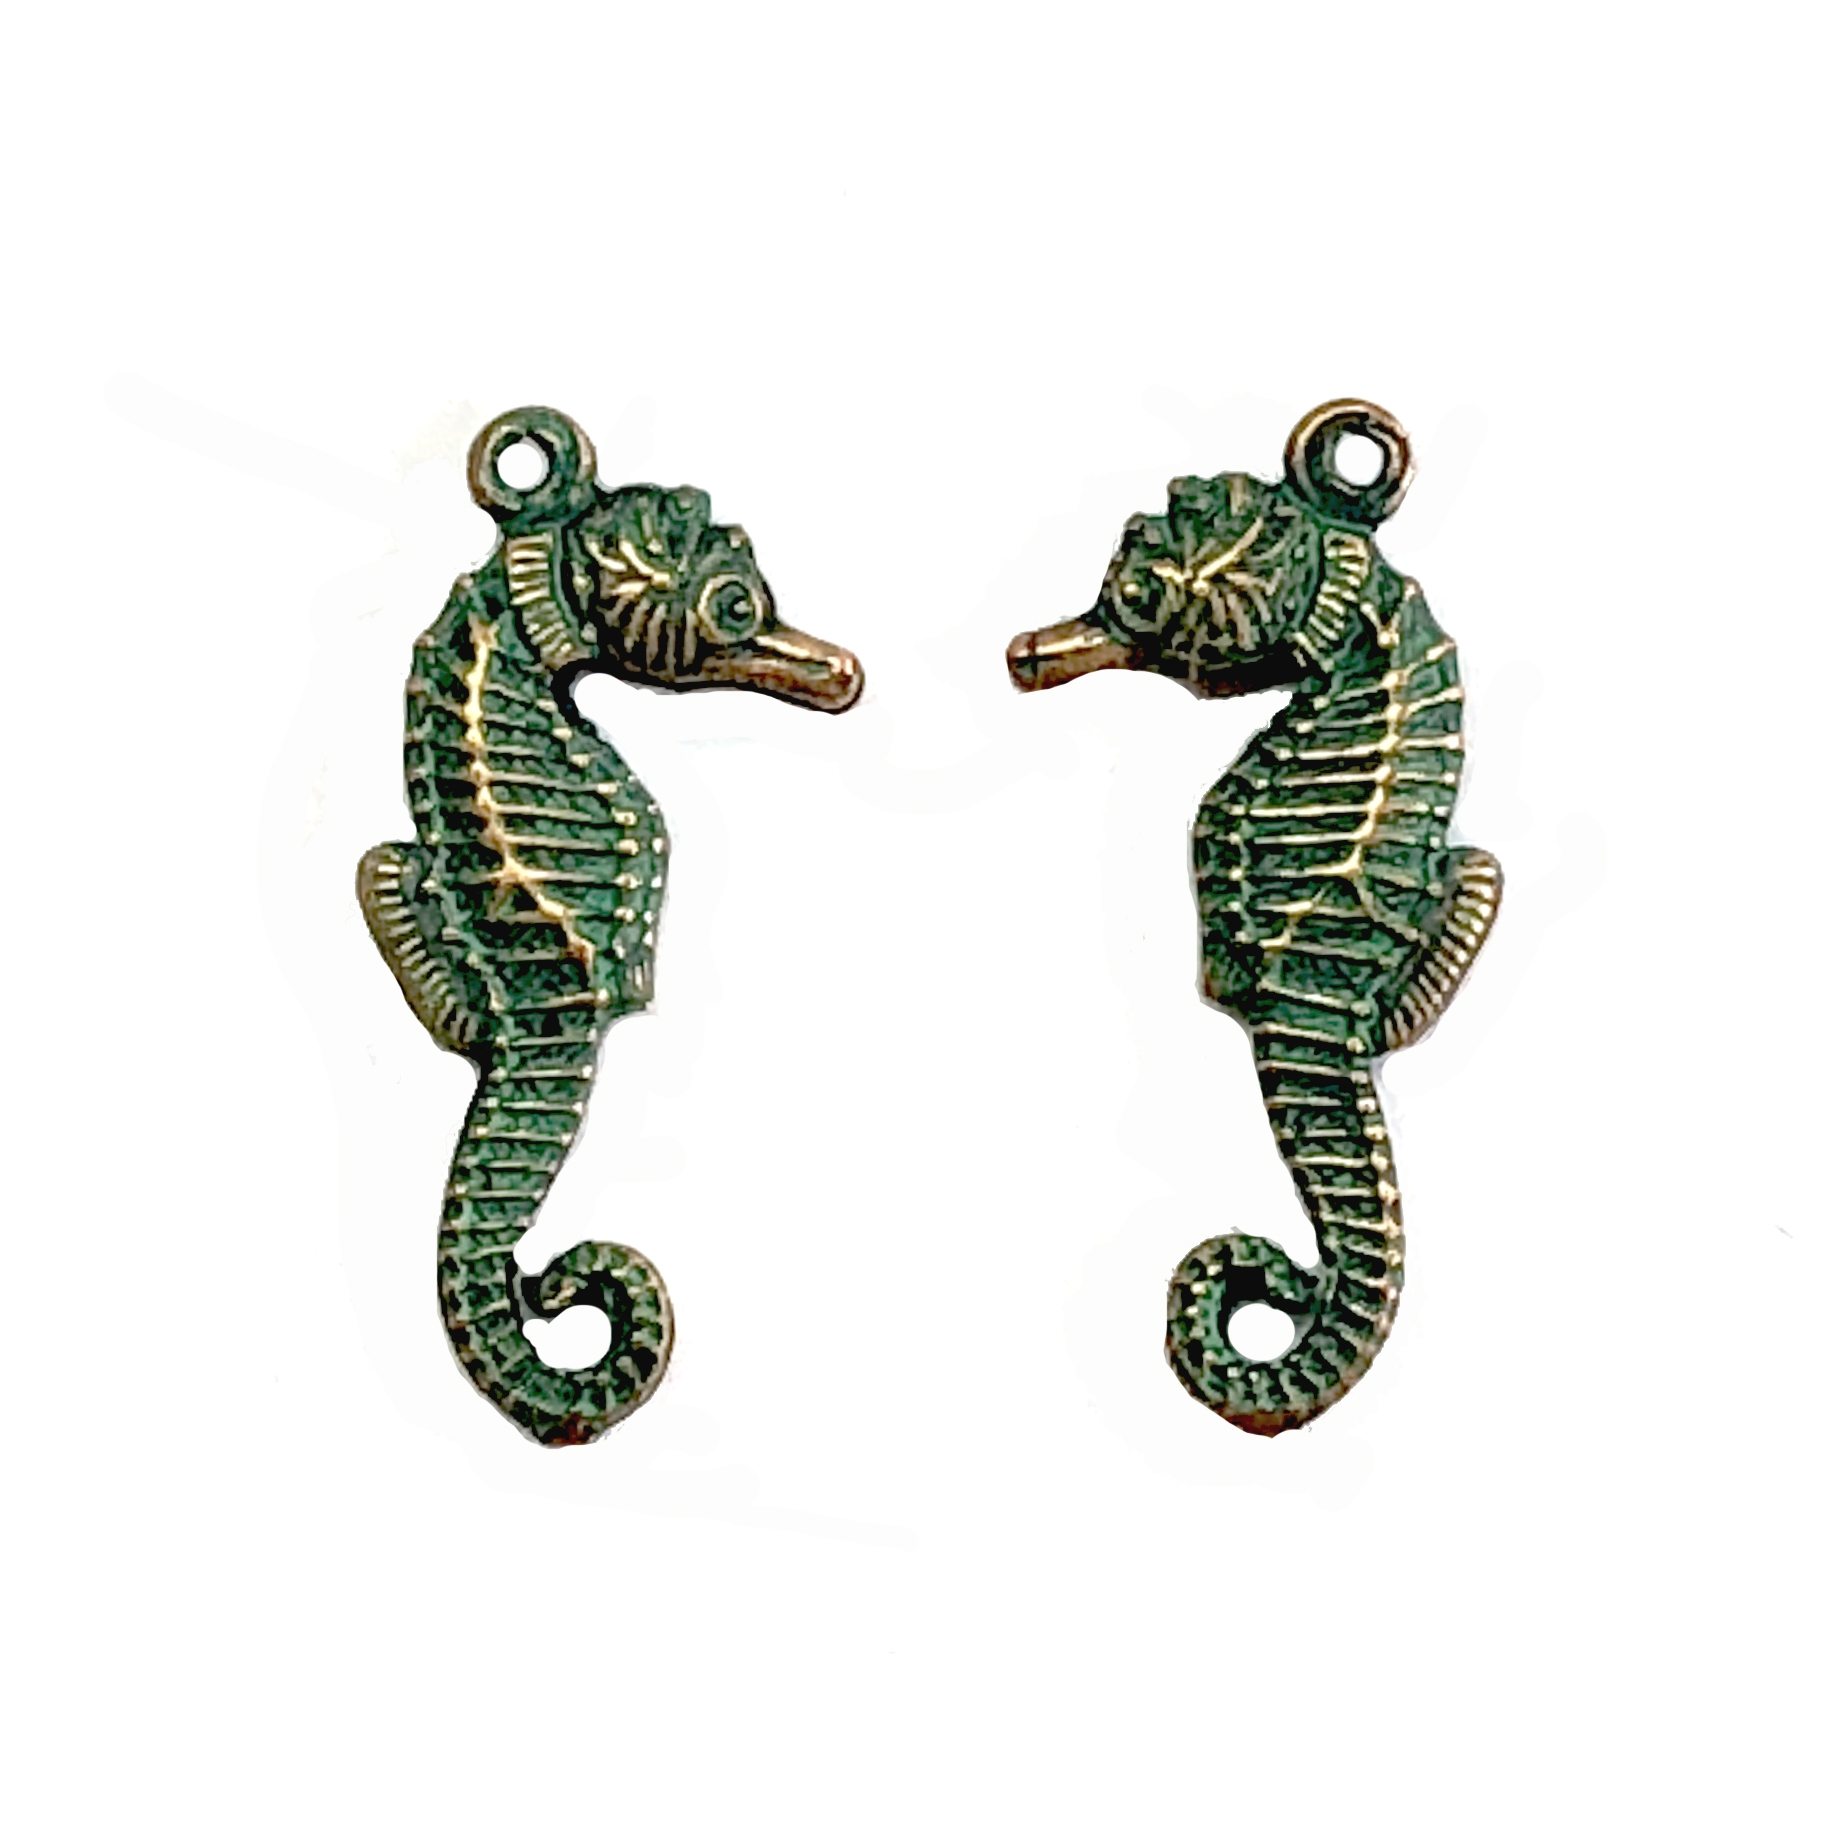 brass seahorse, beach jewelry, jewelry making, 08184, B'sue Boutiques, US made jewelry, nickel free jewelry, vintage jewelry supplies, jewelry making supplies, puffy charms, seahorse charms, aqua copper patina, ocean, sea life, brass charms